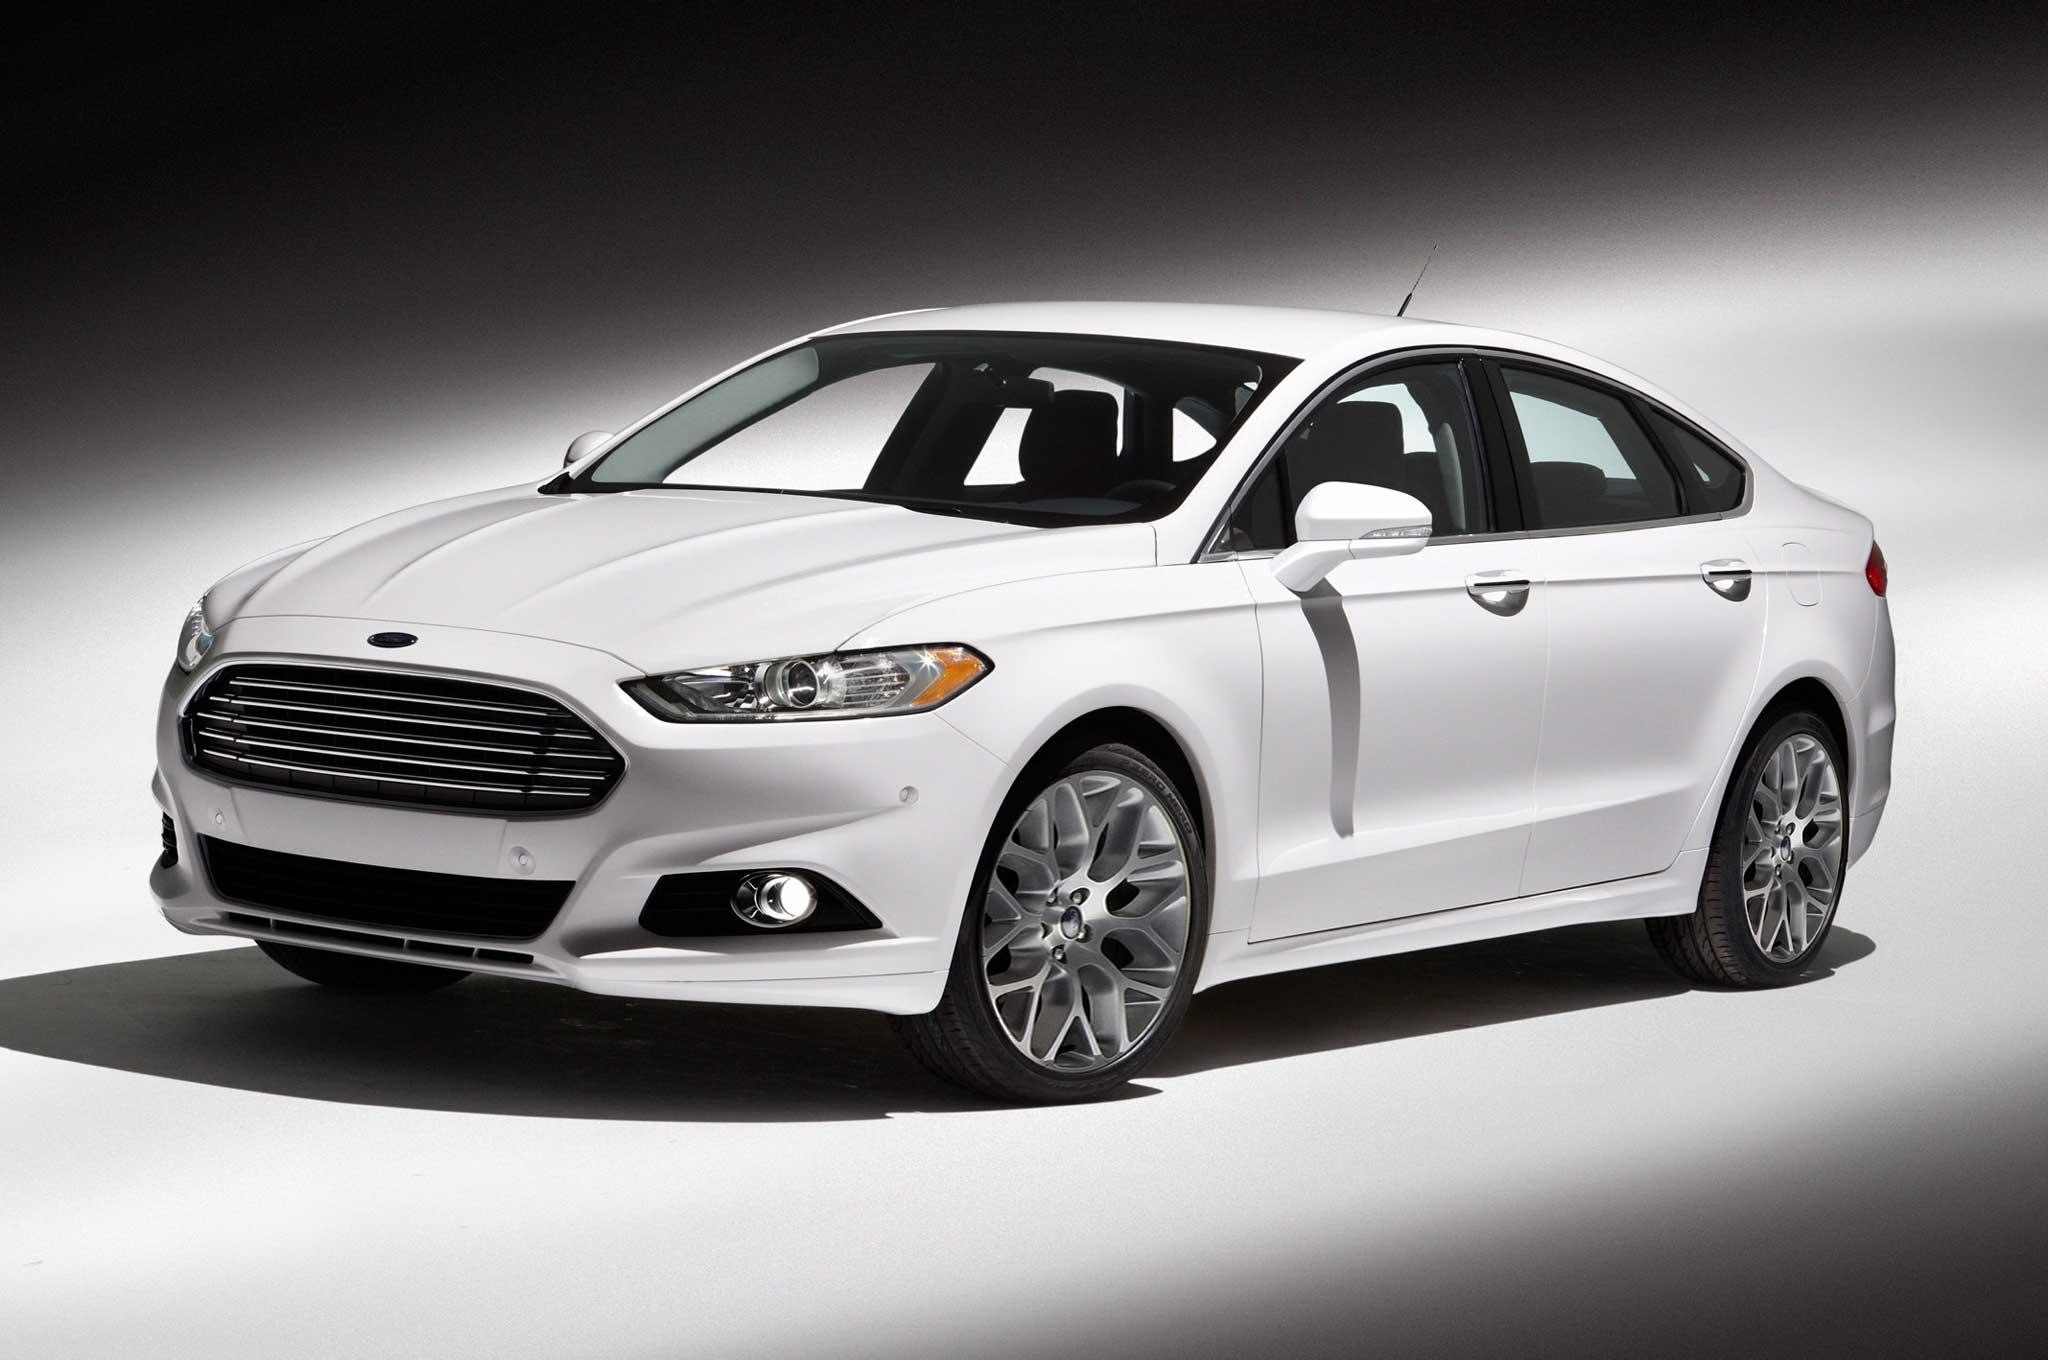 Ford recalls 600,000 cars in US to fix brake problem